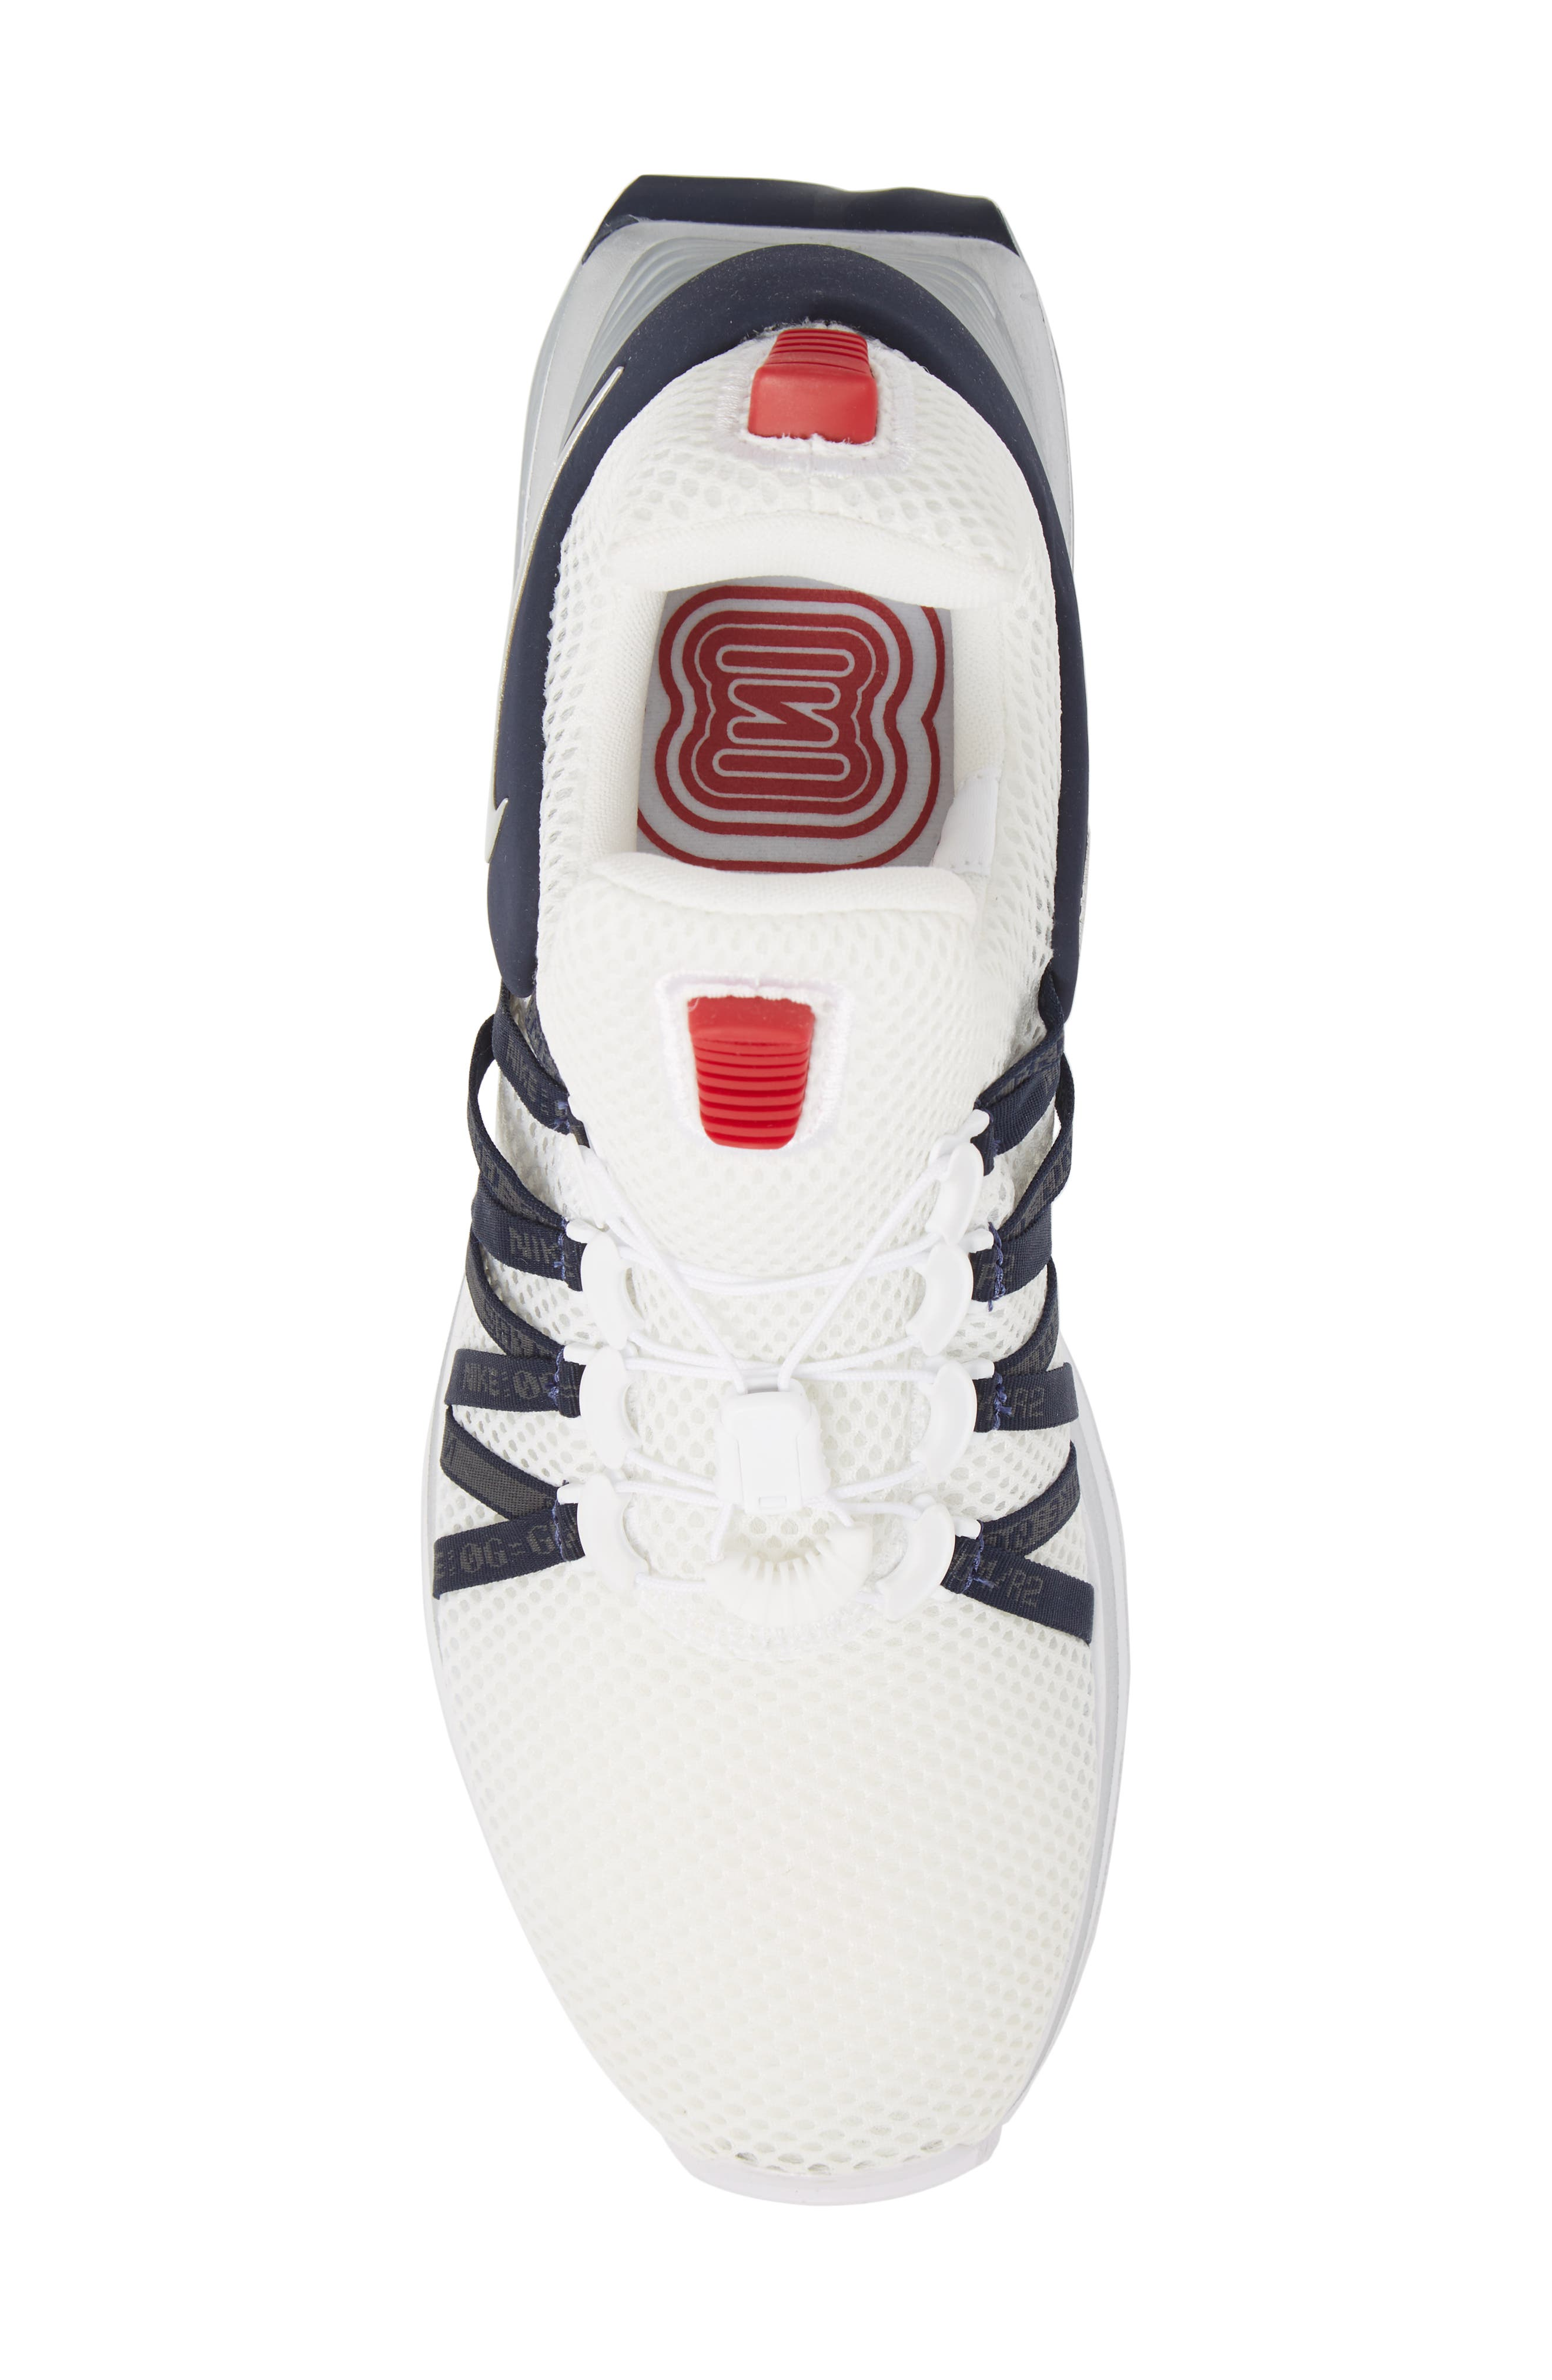 Shox Gravity Sneaker,                             Alternate thumbnail 5, color,                             WHITE/ METALLIC SILVER